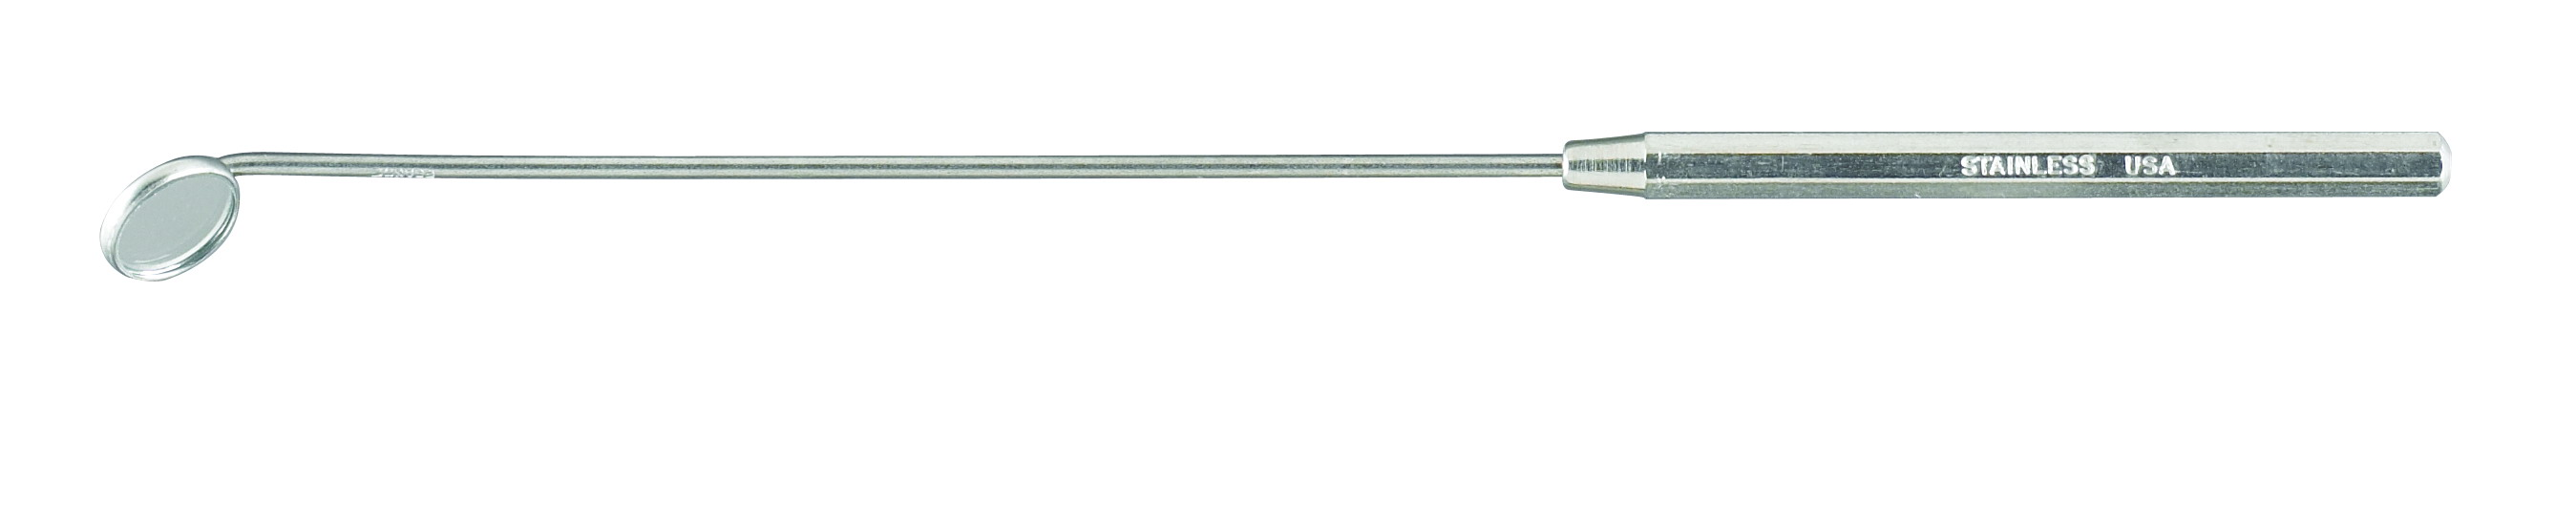 laryngeal-mirror-size-00-with-octagon-threaded-handle-12-mm-23-2-00-miltex.jpg